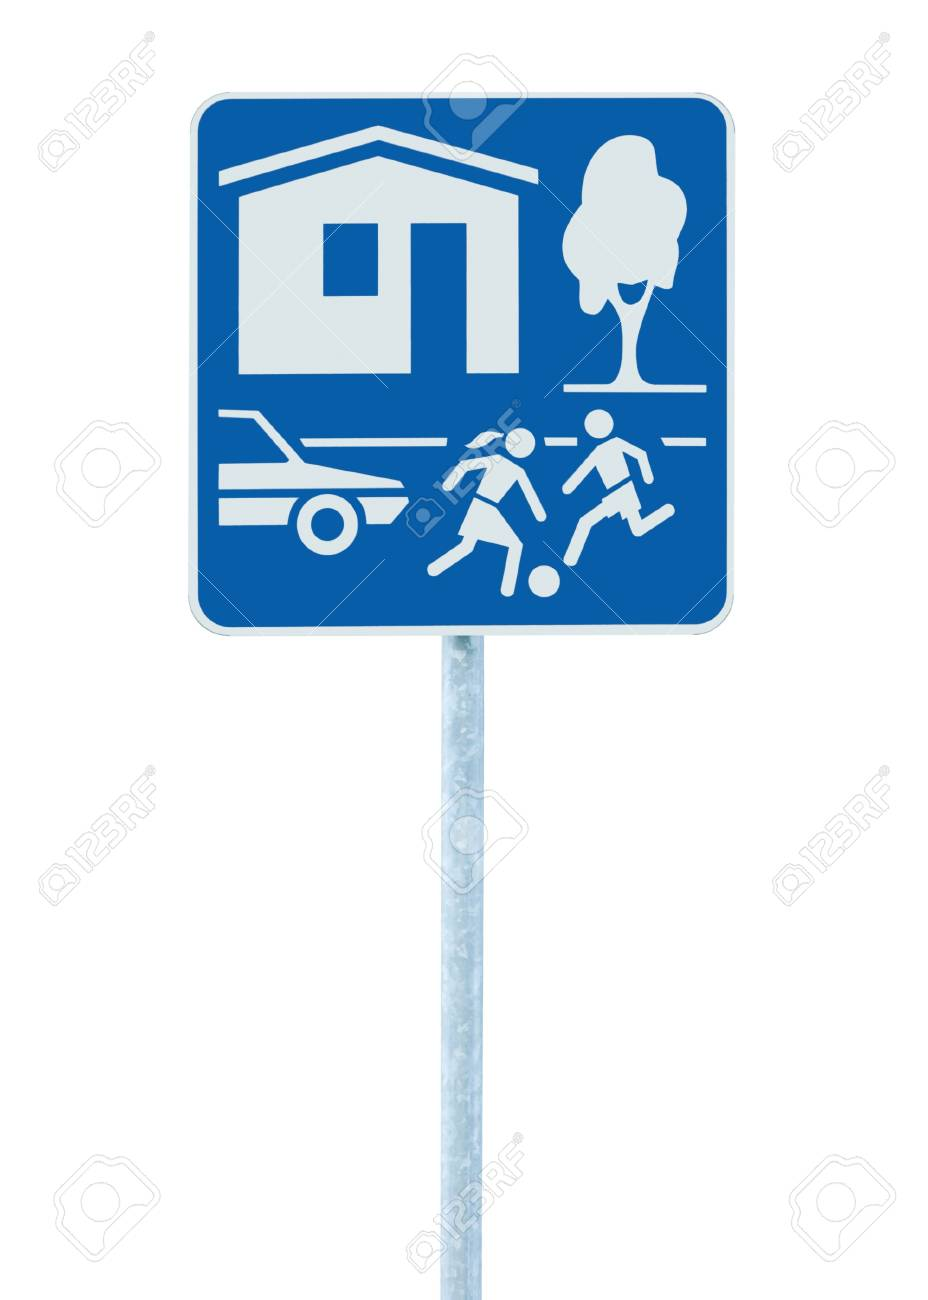 Home Zone Entry Sign, isolated residential area road traffic roadsign Stock Photo - 9584285